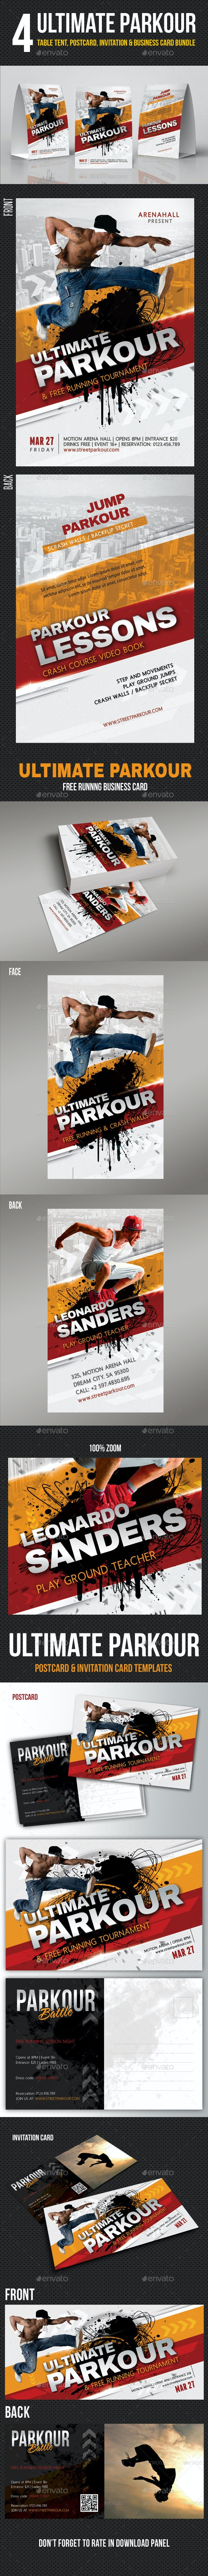 Ultimate Parkour Business Card Postcard Table Tent - Cards & Invites Print Templates